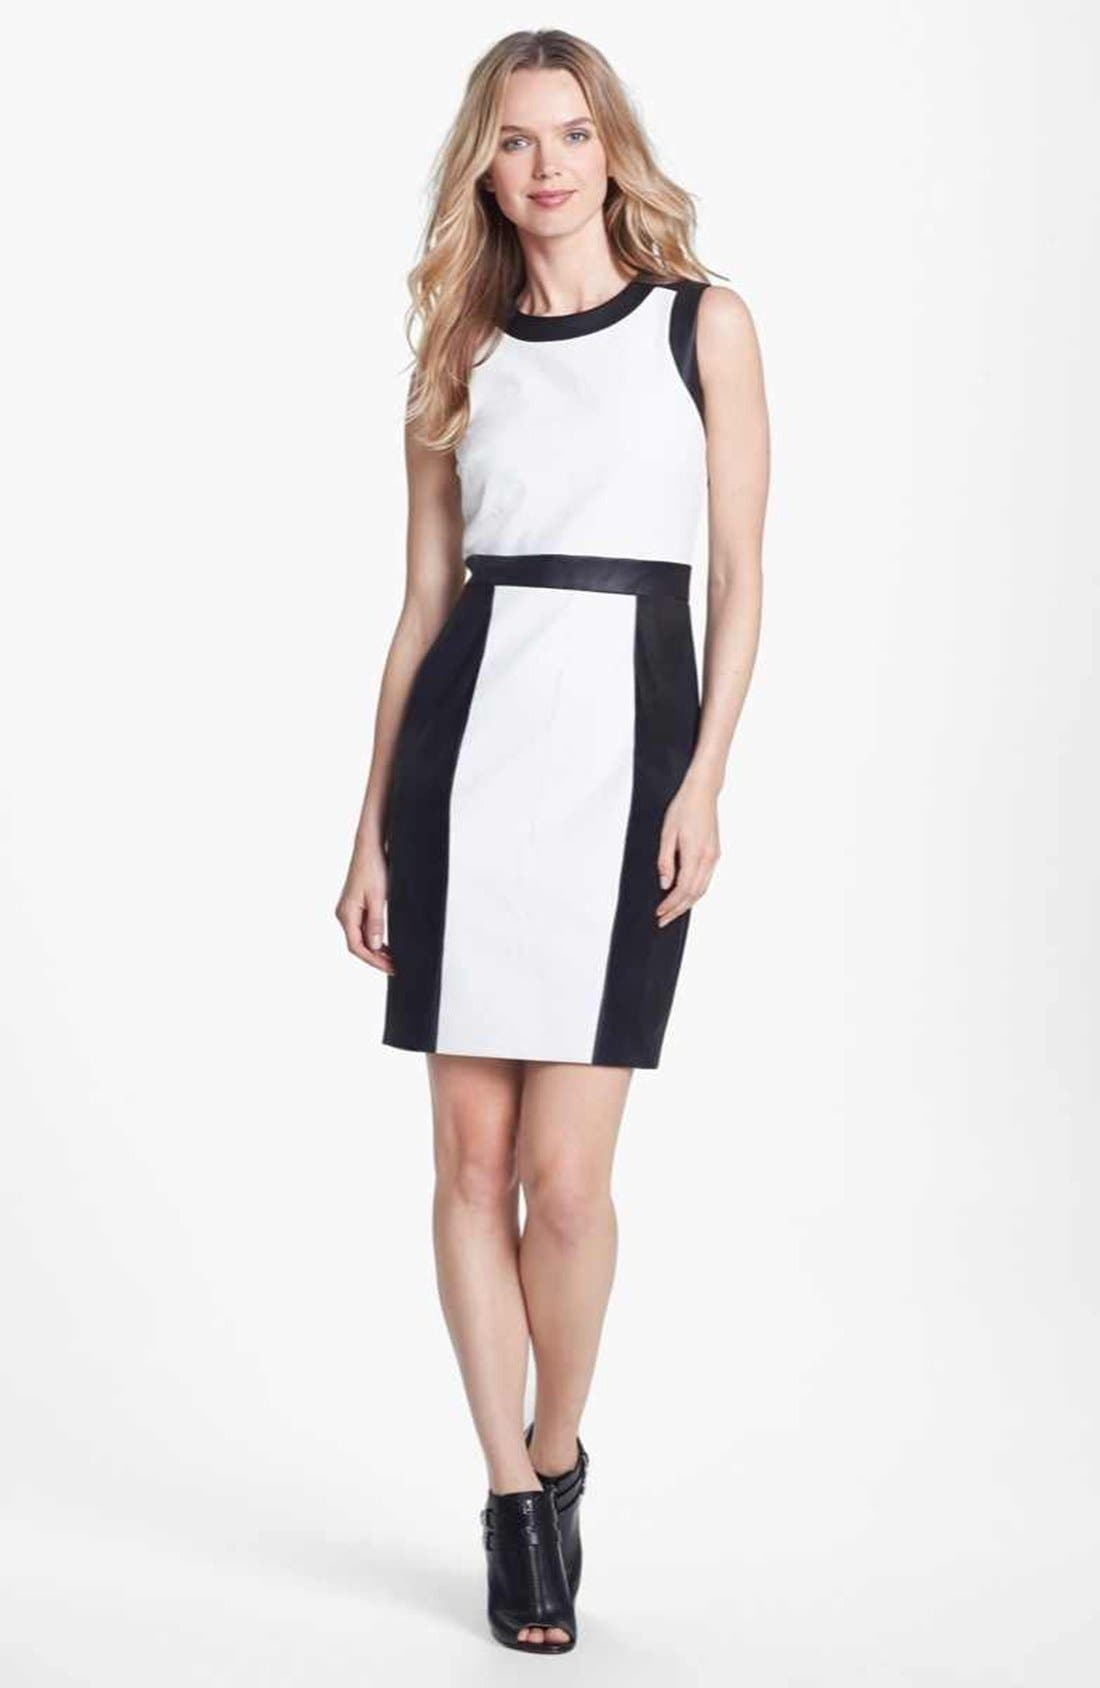 Main Image - Vince Camuto Colorblock Perforated Faux Leather Sheath Dress